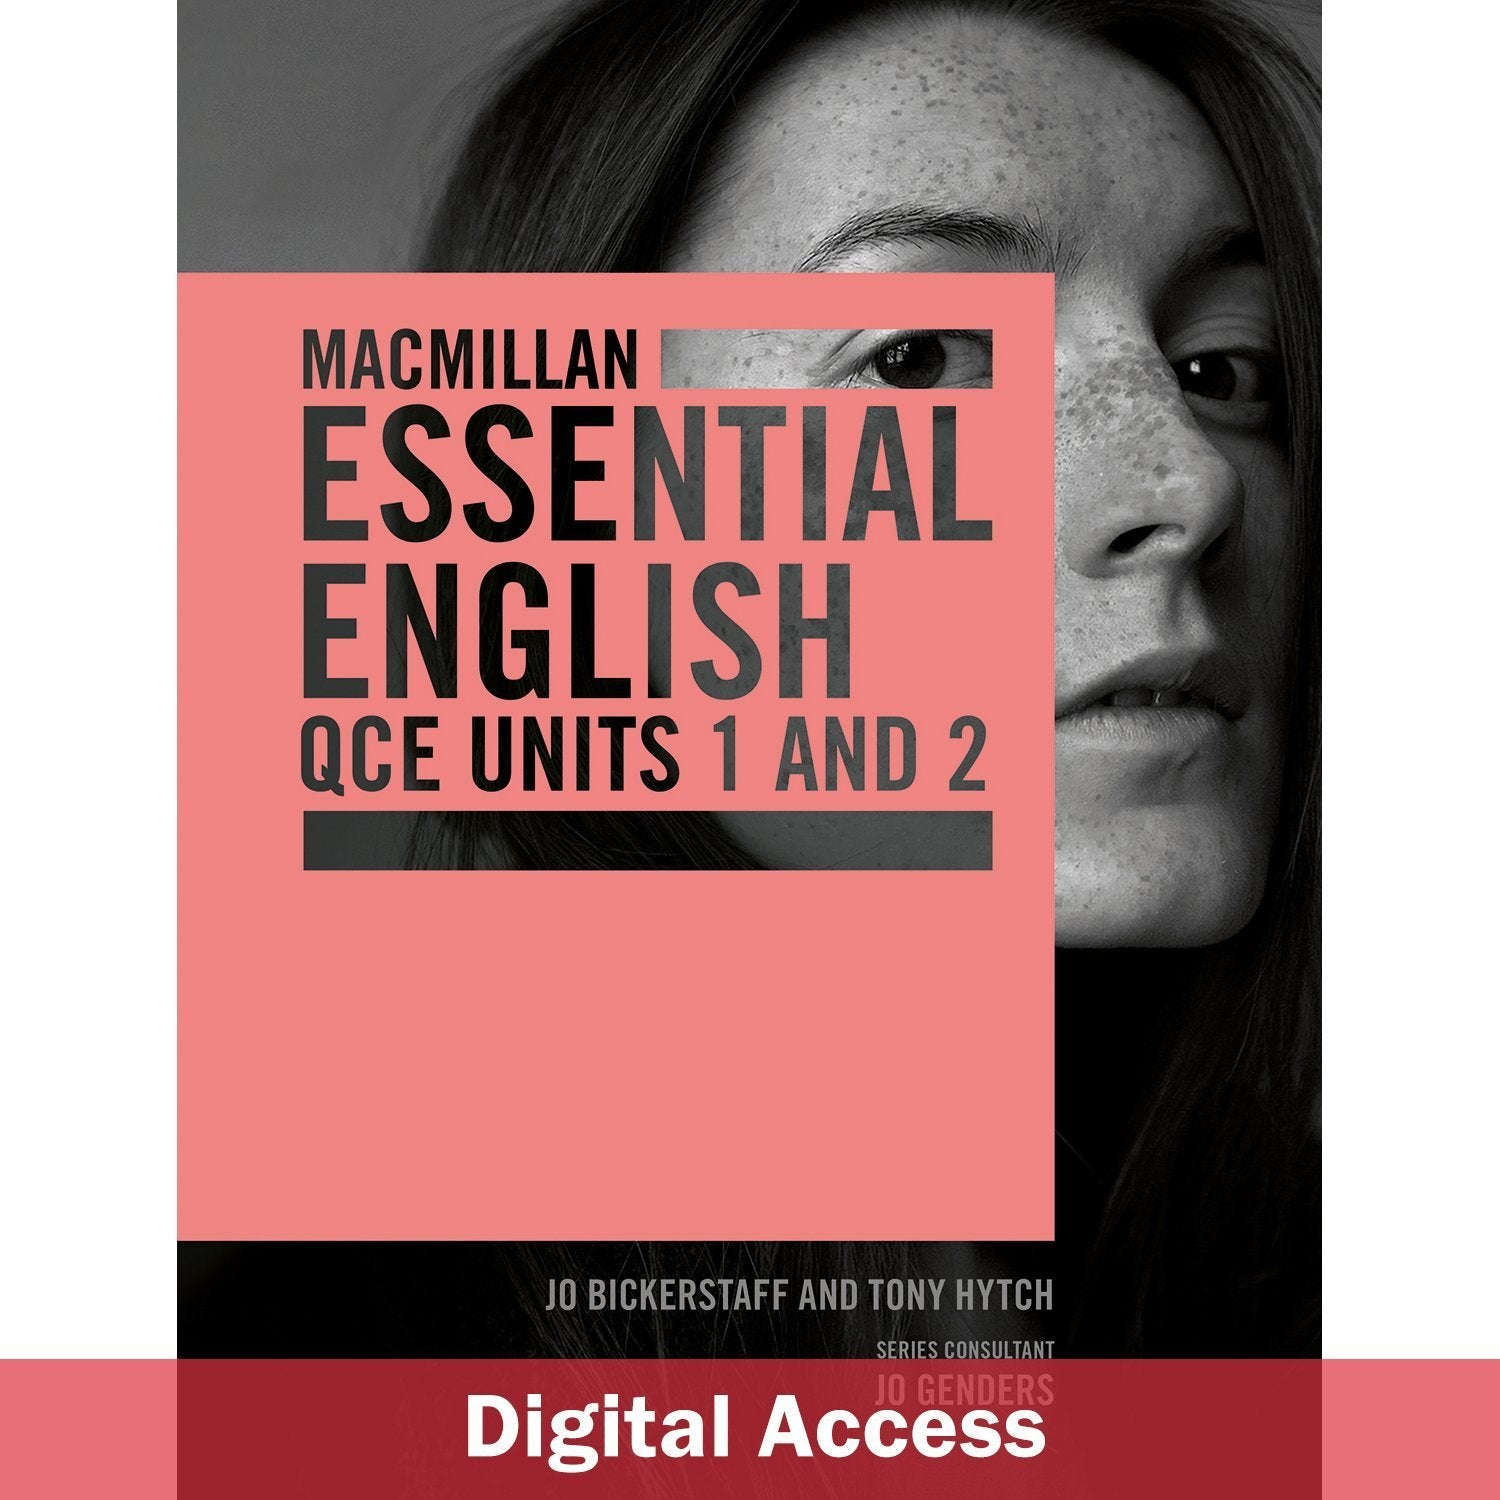 Macmillan Essential English QCE Units 1&2 Student Digital access